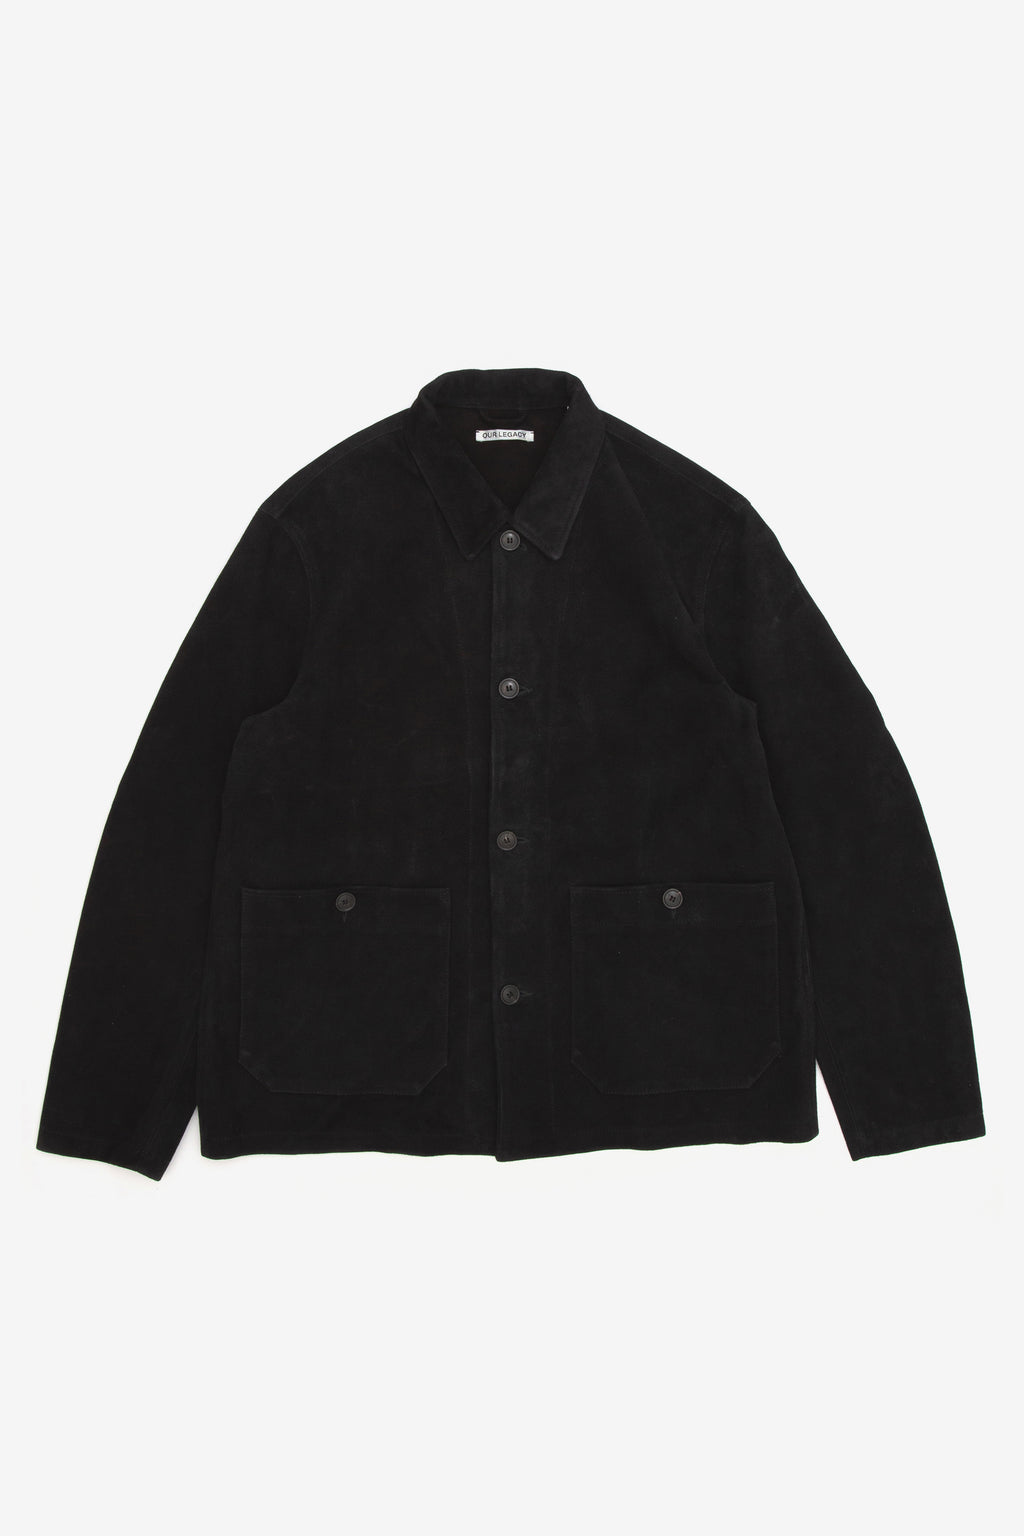 Our Legacy Archive Box Shirt Black Suede